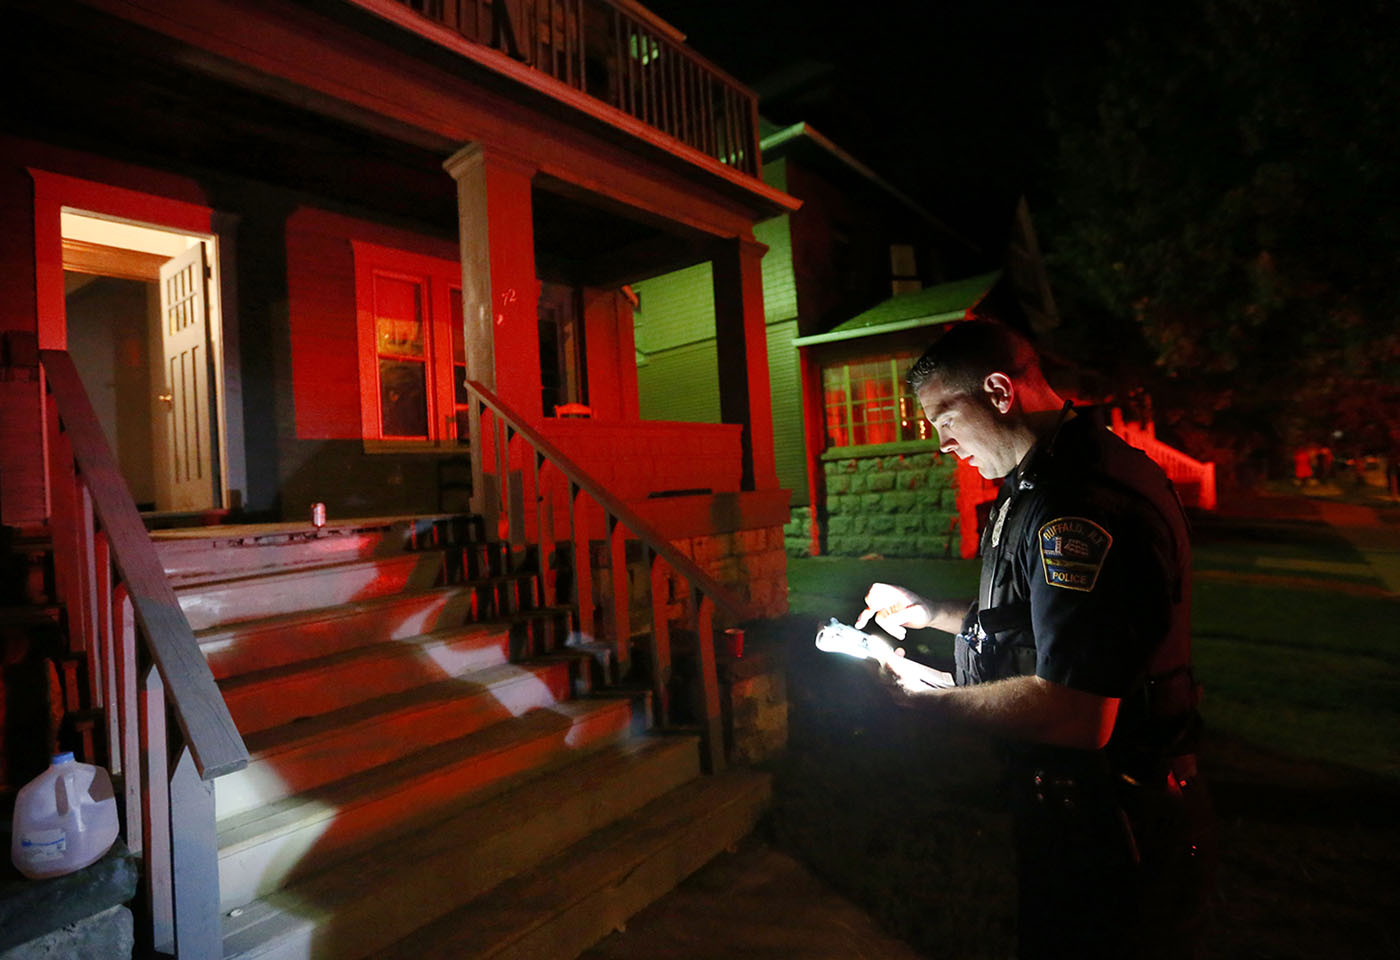 UB students have returned to Buffalo for school starting on Monday. They flood the University Heights neighborhood for partying, Saturday, Aug. 27, 2016. Buffalo Police Officer Patrick McDonald writes up a citation for the residents of 72 Winspear after the police broke up a party there. (Sharon Cantillon/Buffalo News)